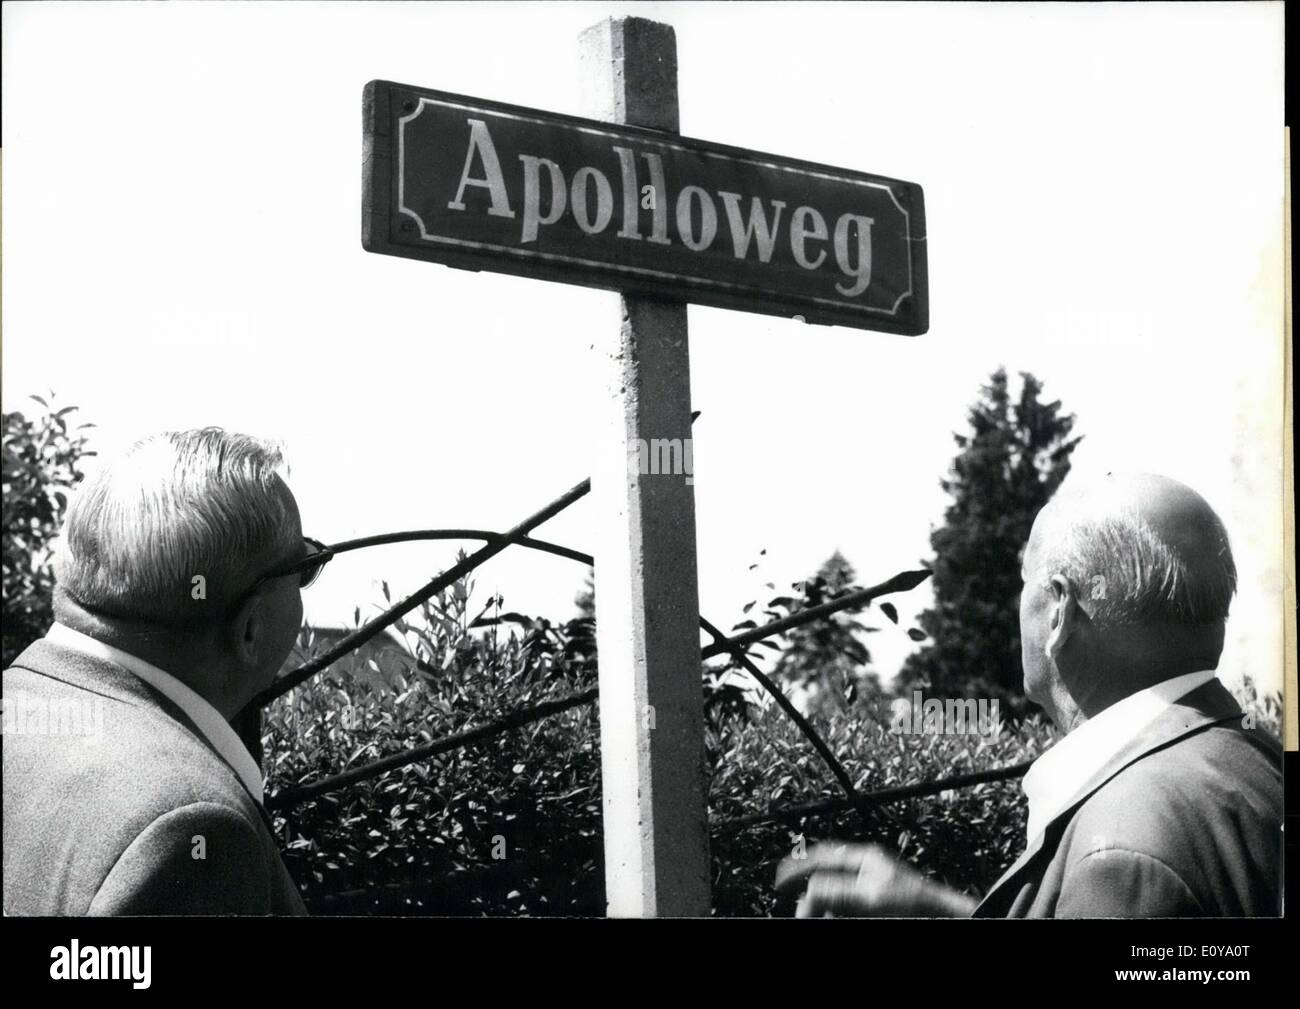 Jun. 11, 1969 - ''Apollo 16'' is not at Cape Kennedy...nor in Houston, Texas, but in Munich-Obermenzing! This sign humorously refers to the launch of the Apollo rocket ''zum Mond schie?t''(to the moon). The residents of ''Apolloweg 16'' have no intention of flight though! This street name probably has more to do with the Greek god than the American space program! - Stock Image